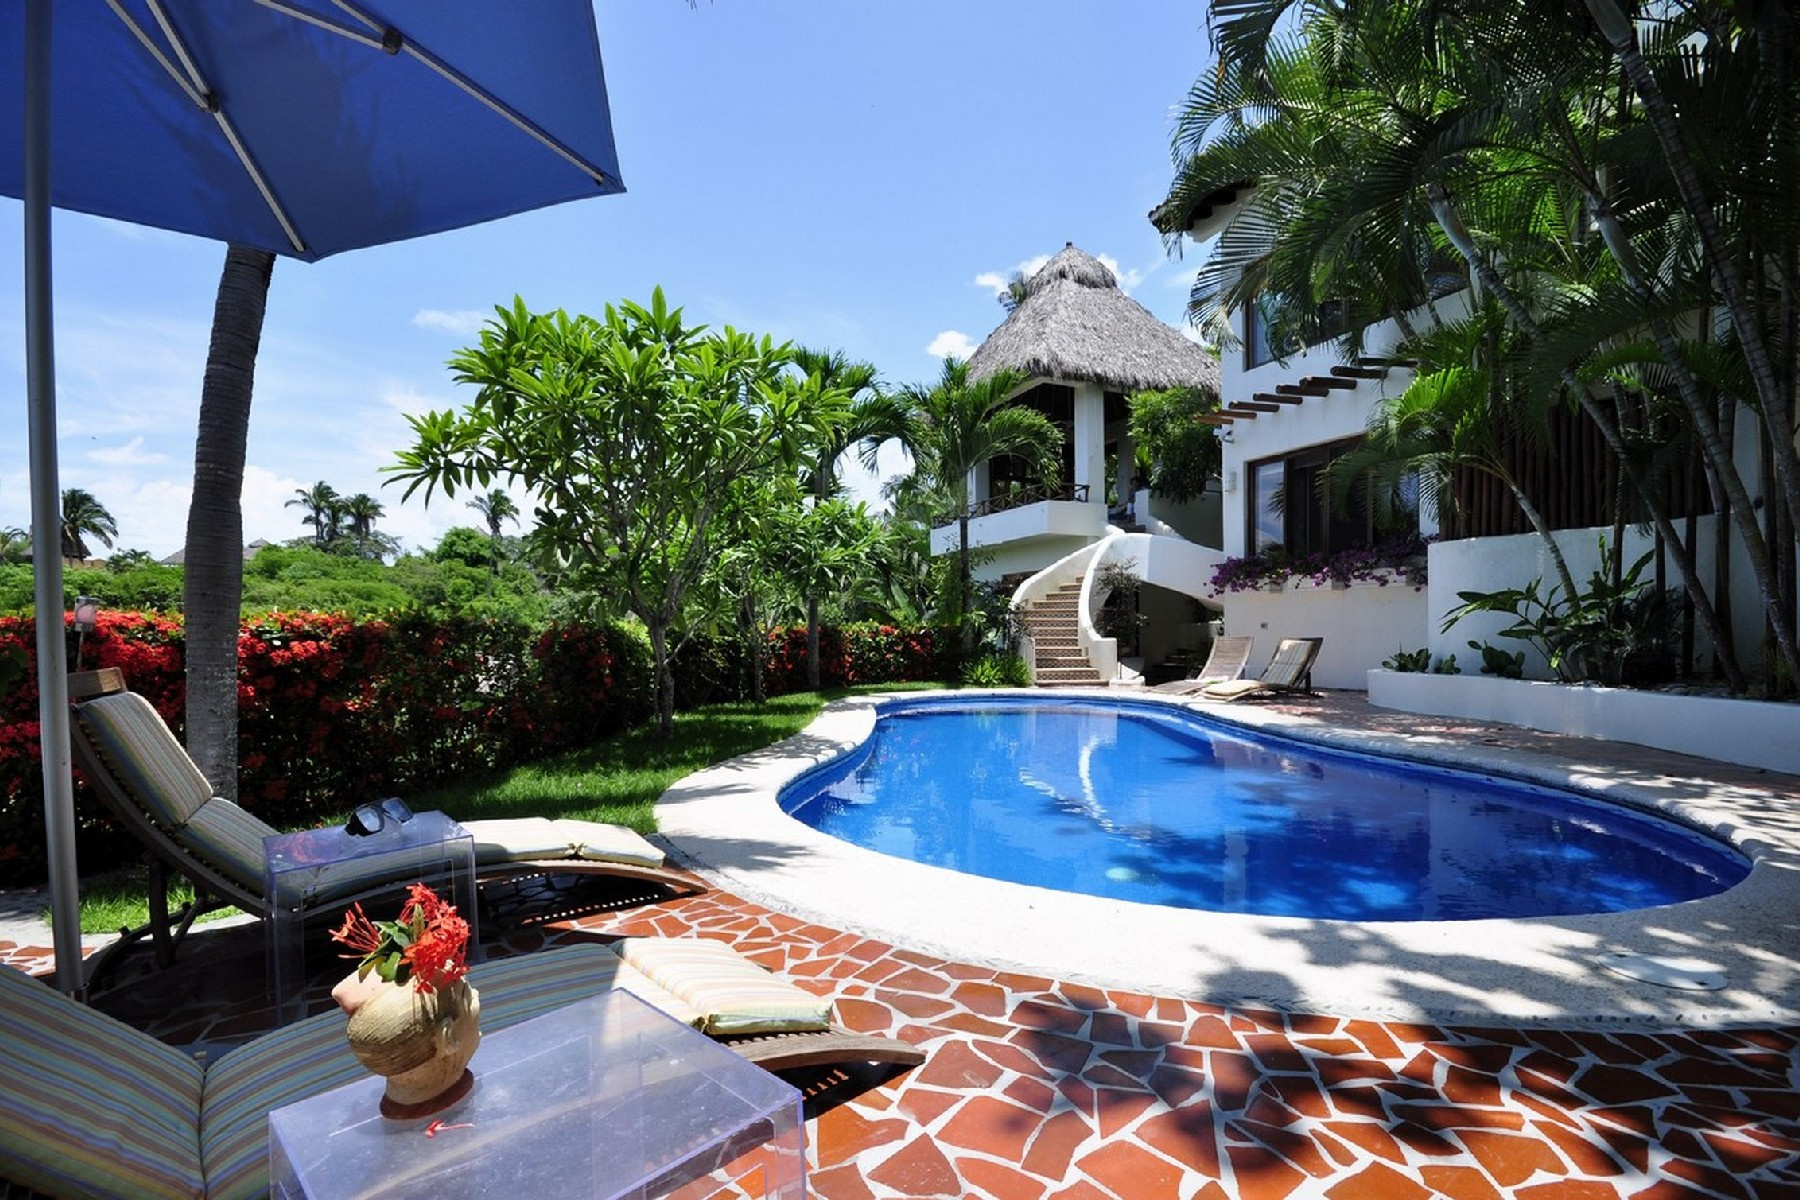 Single Family Home for Sale at Casa Flores, Sayulita, Puerto Vallarta Calle Libertad 50 Sayulita, Nayarit 63734 Mexico